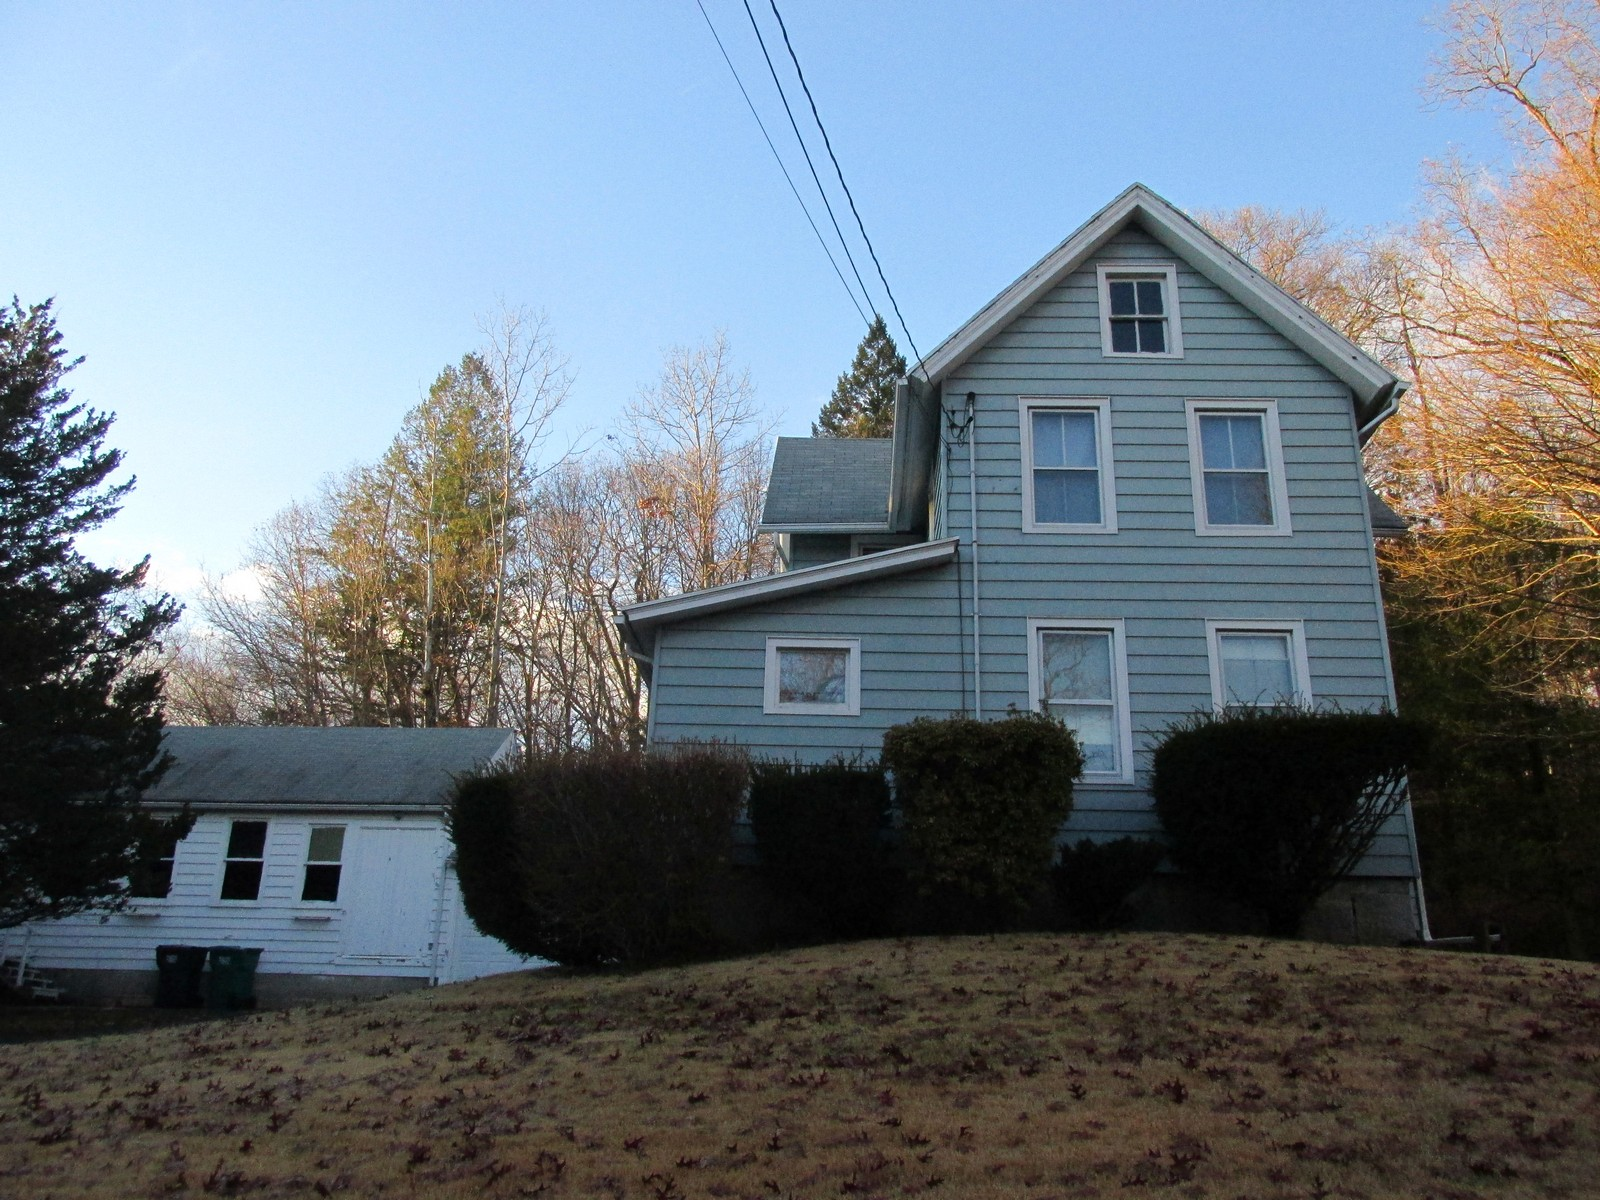 Single Family Home for Sale at A Property Perfect for a Builder or Carpenter 27 Chestnut Street Seymour, Connecticut, 06483 United States